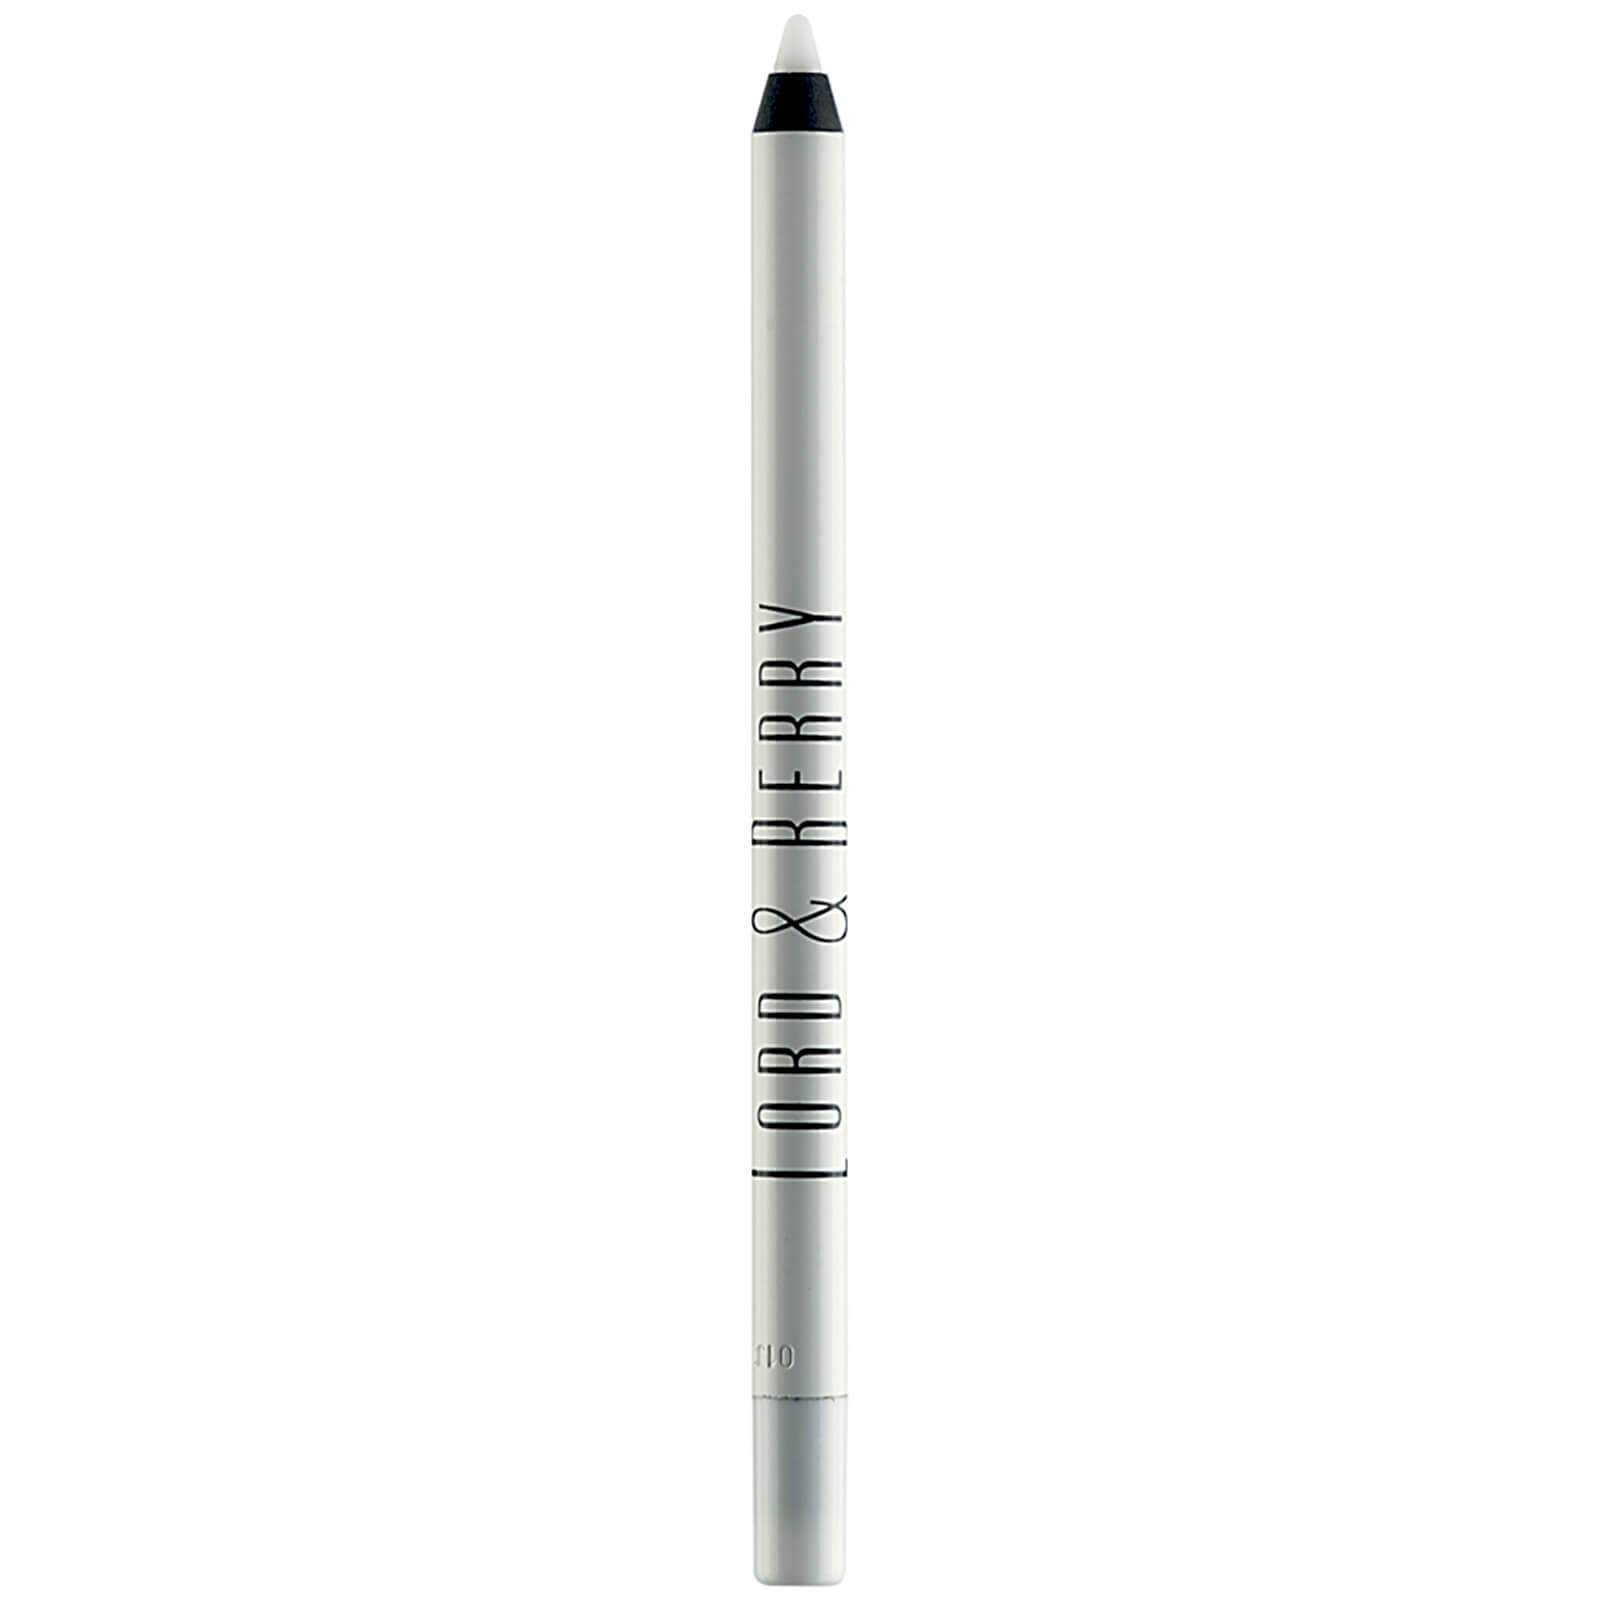 Lord & Berry Lord & Berry Silhouette Neutral Clear Crayon contour des lèvres